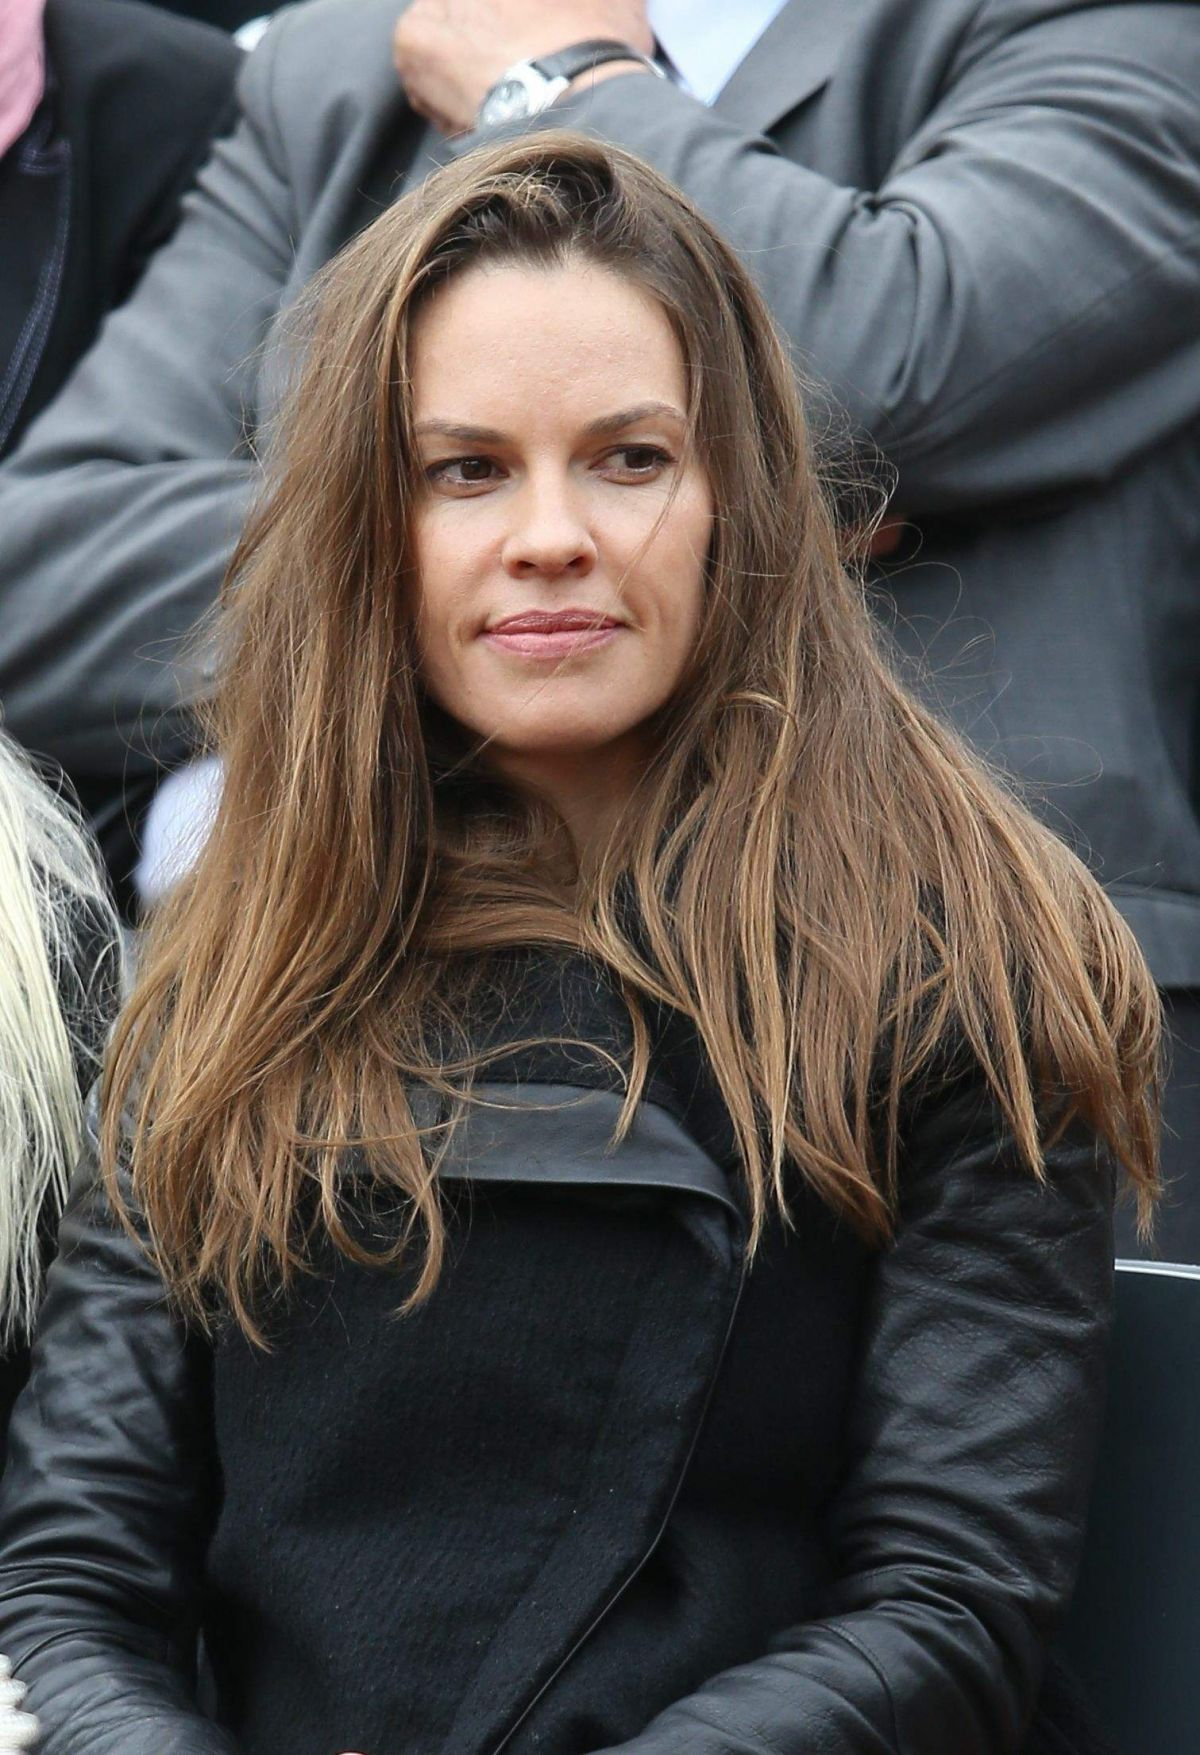 Hilary Swank Attends The Roland Garros French Open - Celebzz Hilary Swank